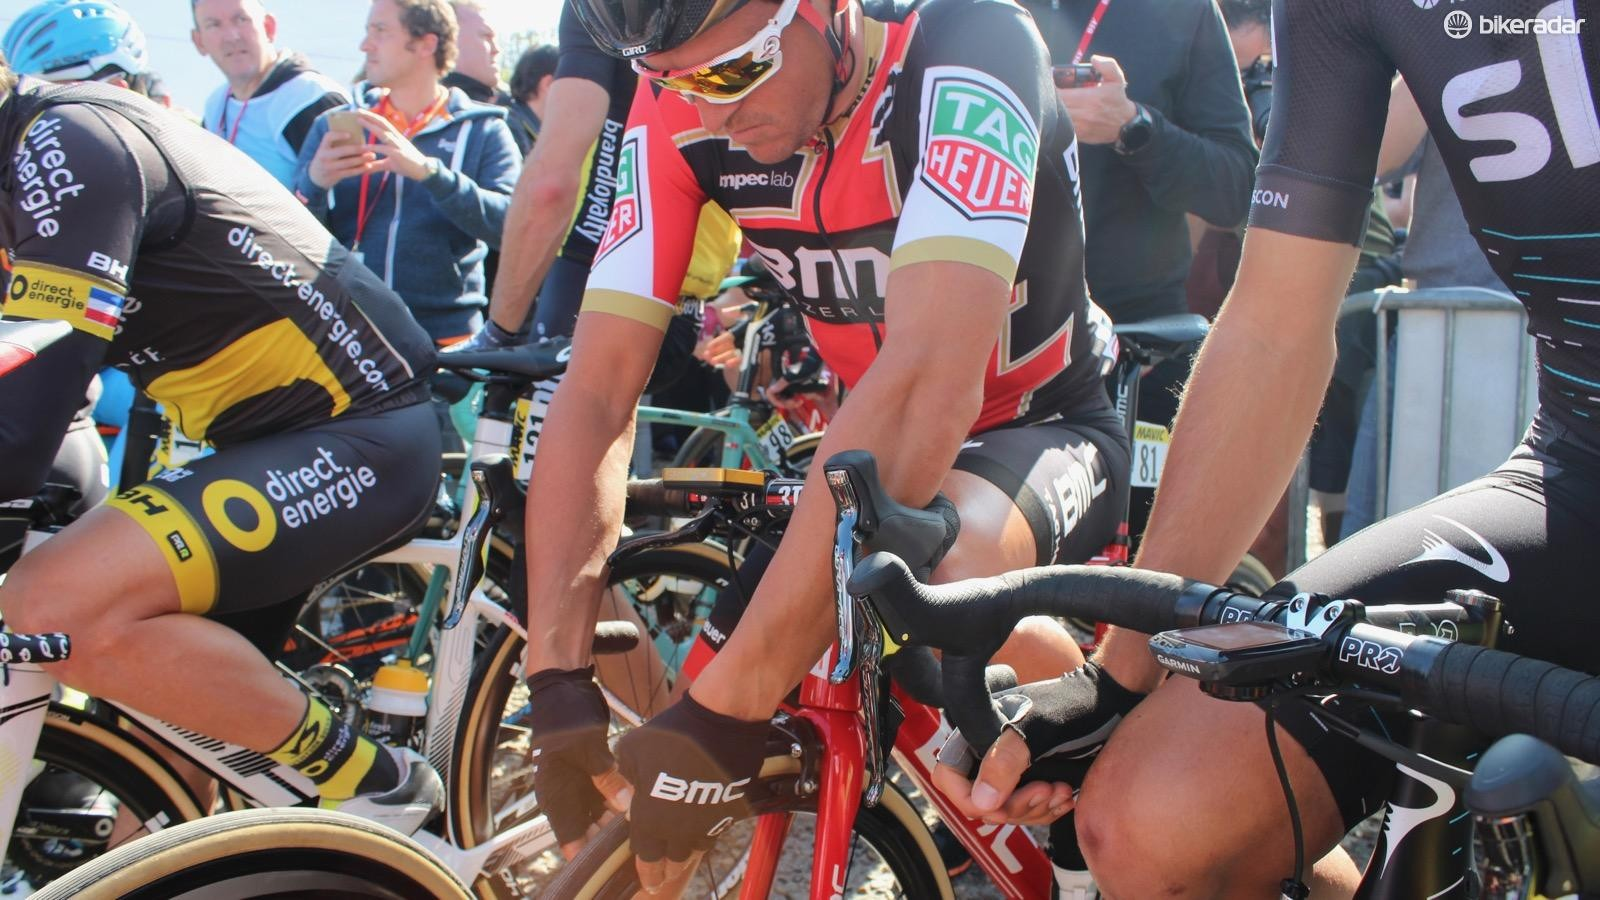 Van Avermaet began the day aboard his #1 bike. Like so many riders, he checked and double checked his air pressure before starting off from Compiegne